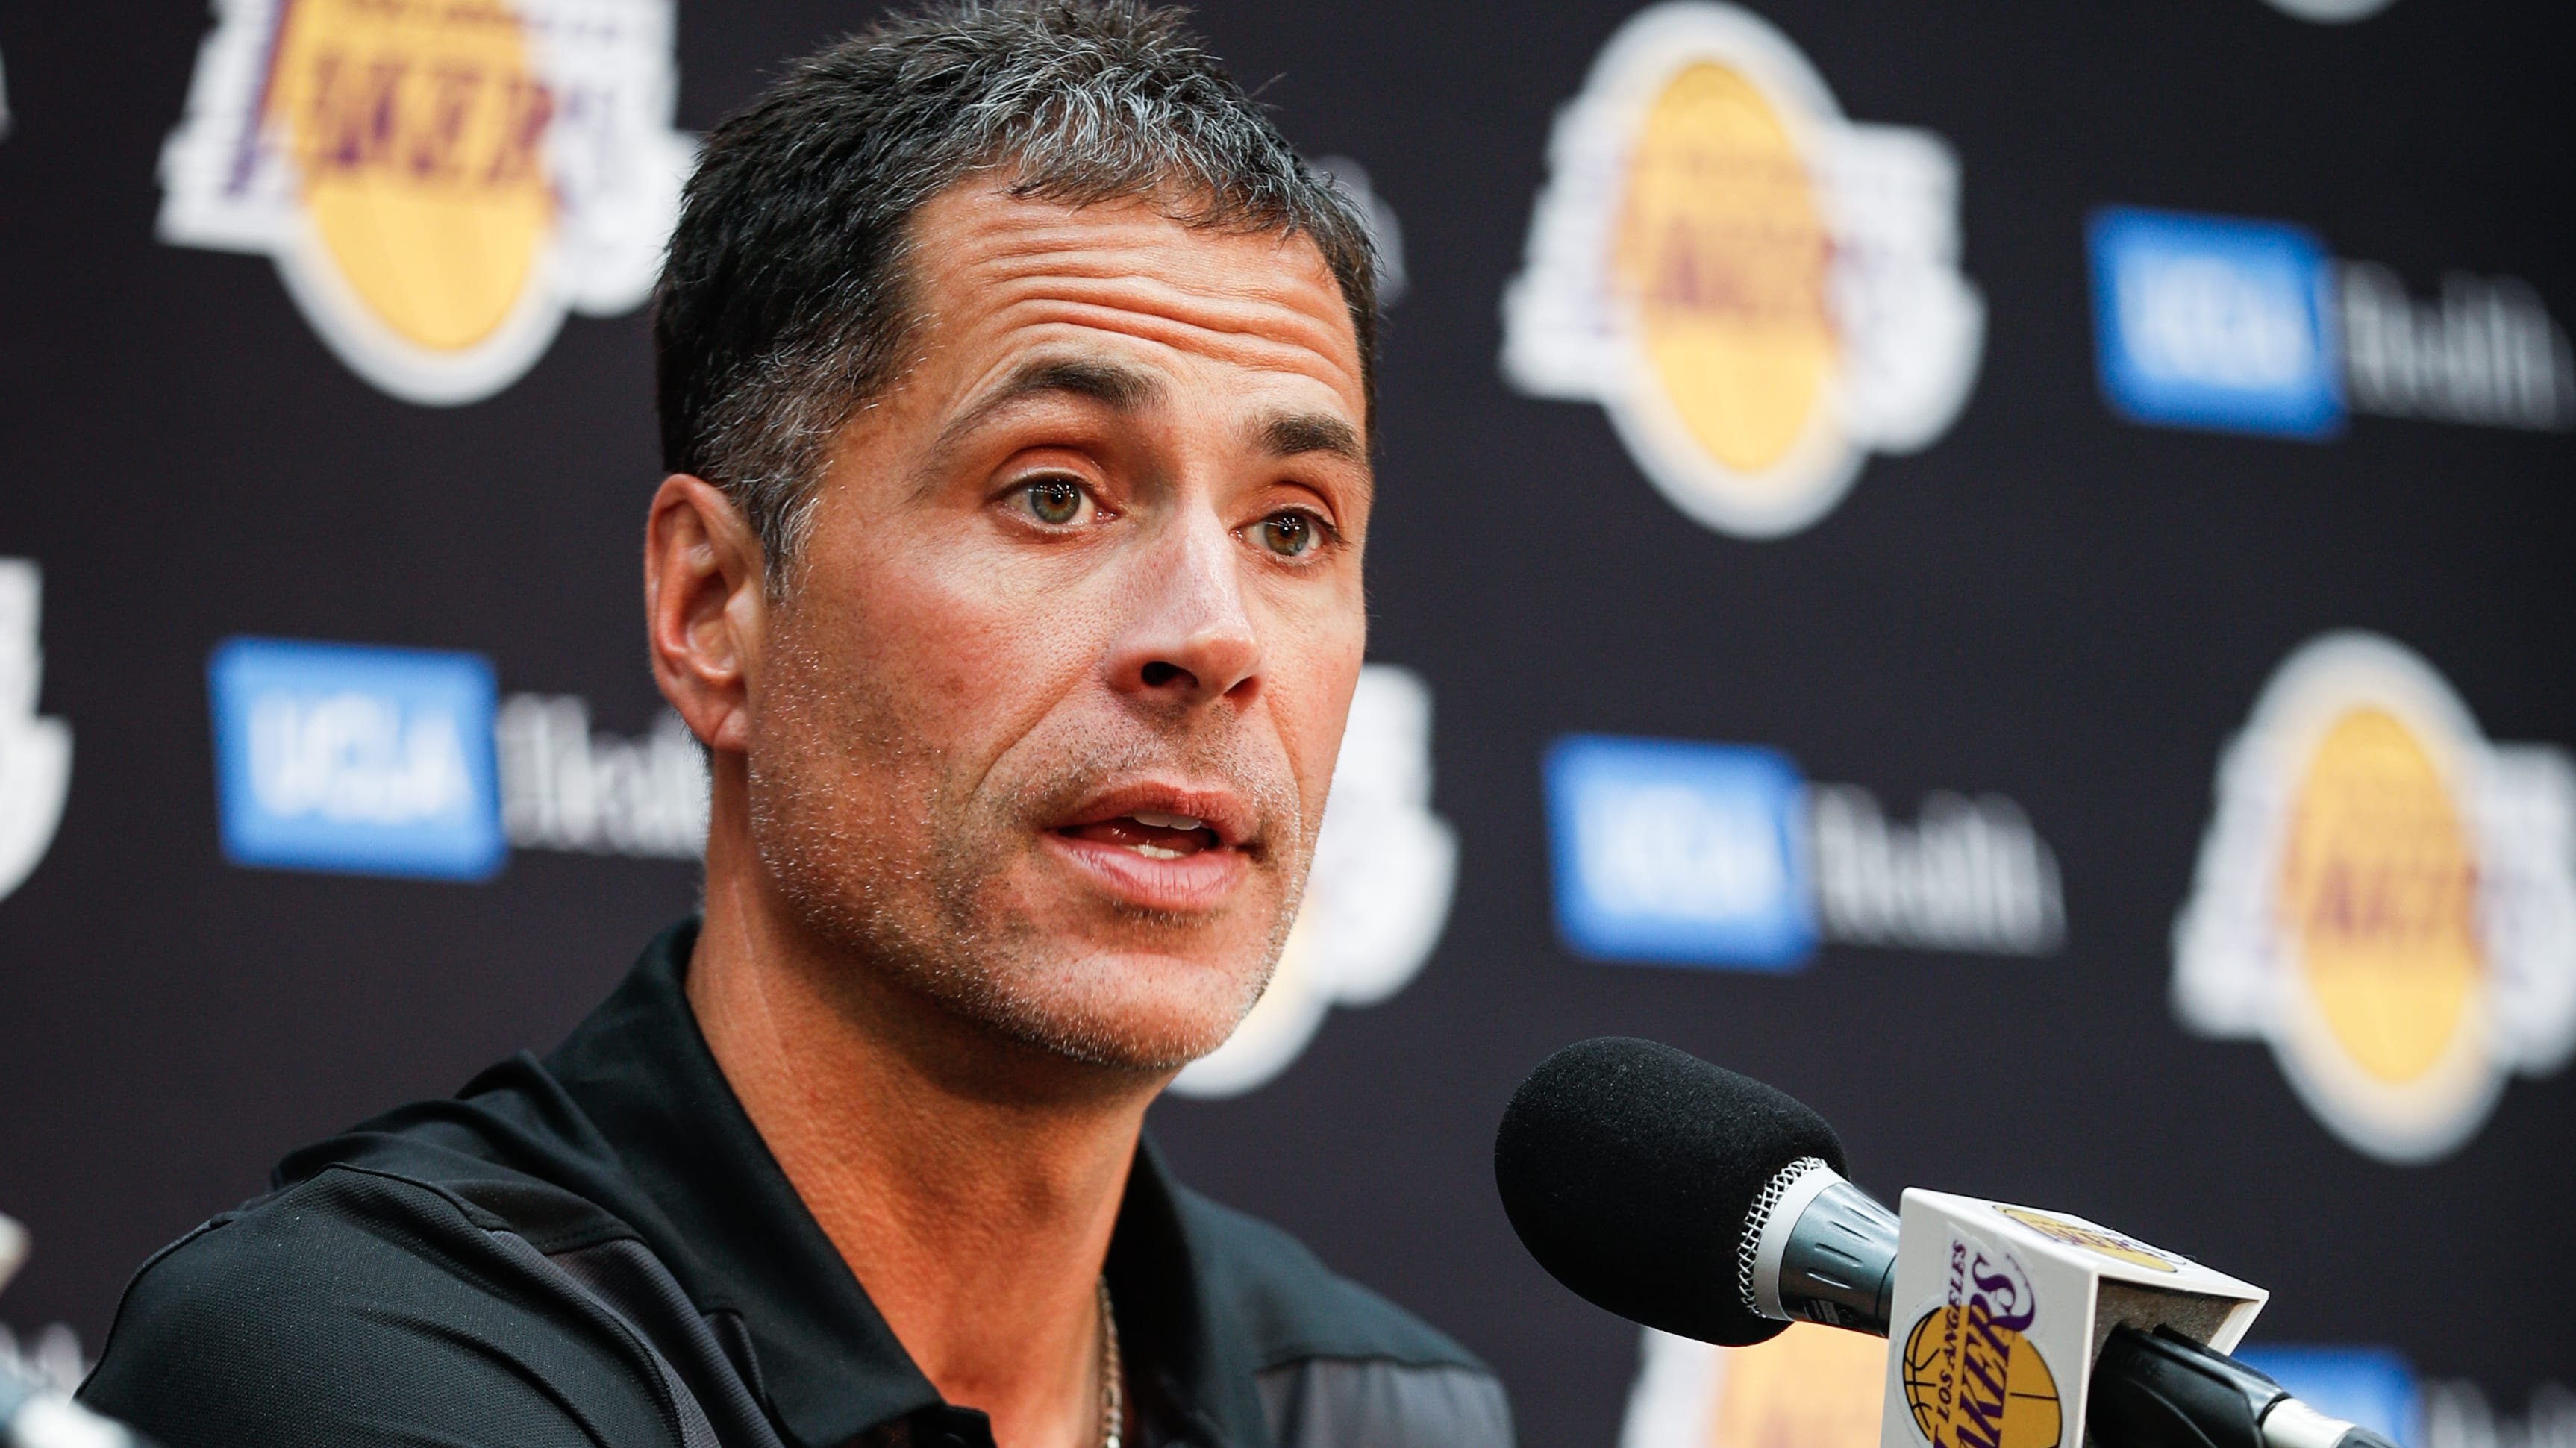 EL SEGUNDO, CA - SEPTEMBER 20: Rob Pelinka discusses the upcoming Los Angeles Lakers' season at UCLA Health Training Center on September 20, 2018 in El Segundo, California. (Photo by Meg Oliphant/Getty Images)